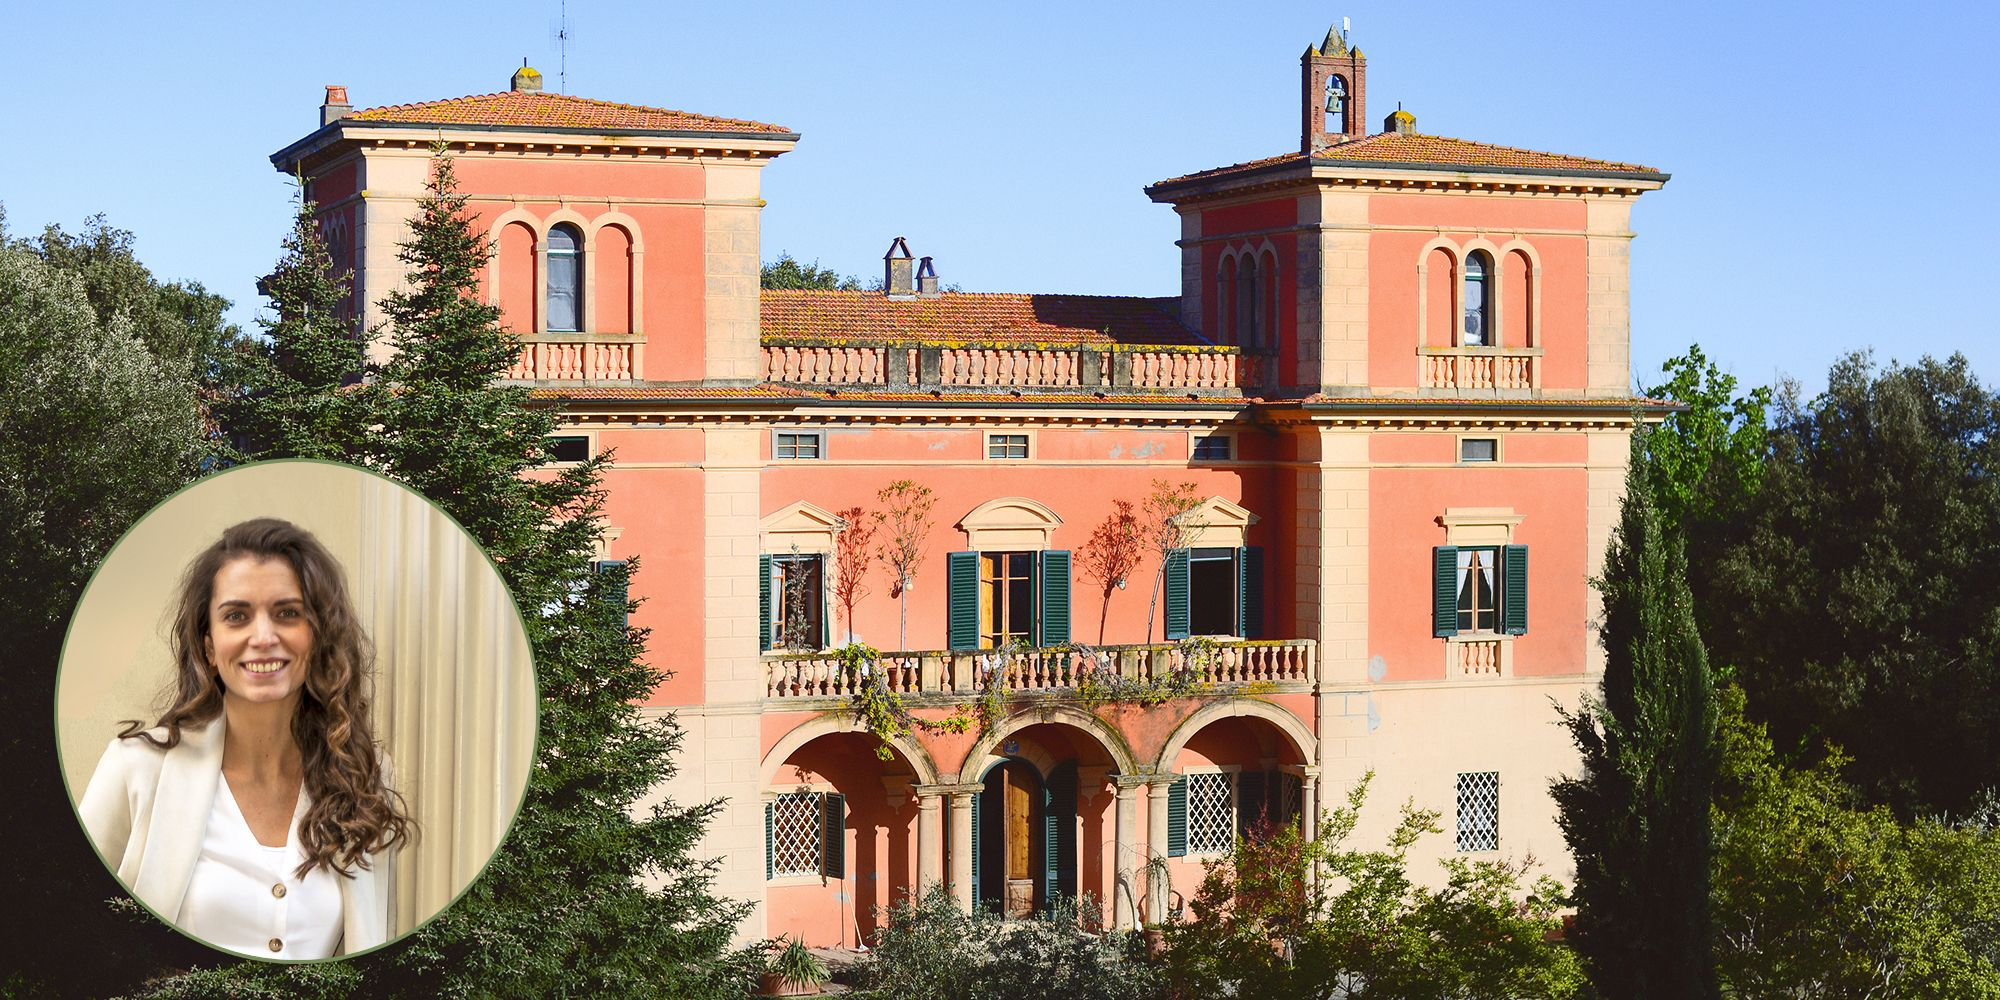 Join CL editor in Tuscany for a green retreat in an eco villa